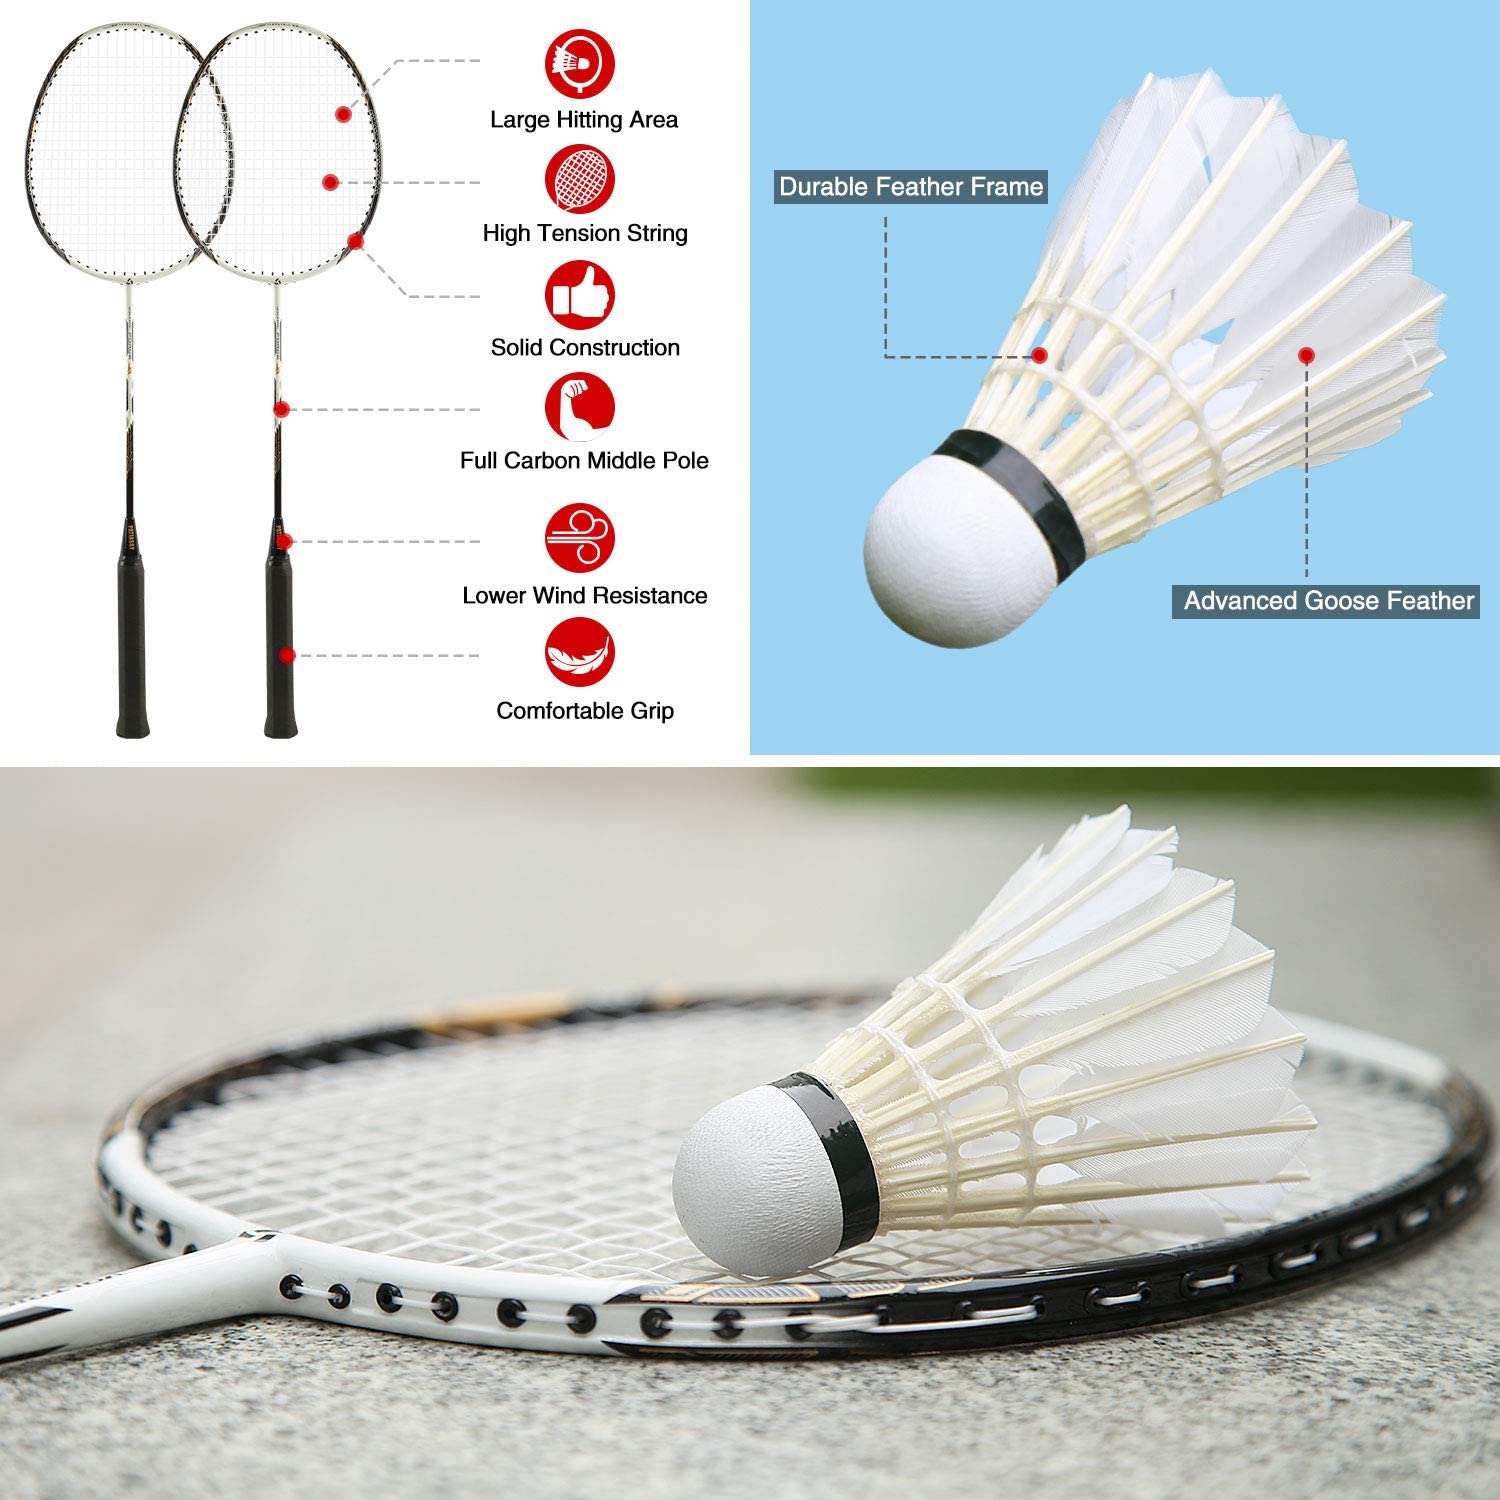 Patiassy Professional Portable Badminton Net Set System for Indoor/Outdoor with Winch System, 4 Carbon Fiber Badminton Rackets, 2 Goose Feather Badminton Shuttlecocks and Carrying Bag : Sports & Outdoors